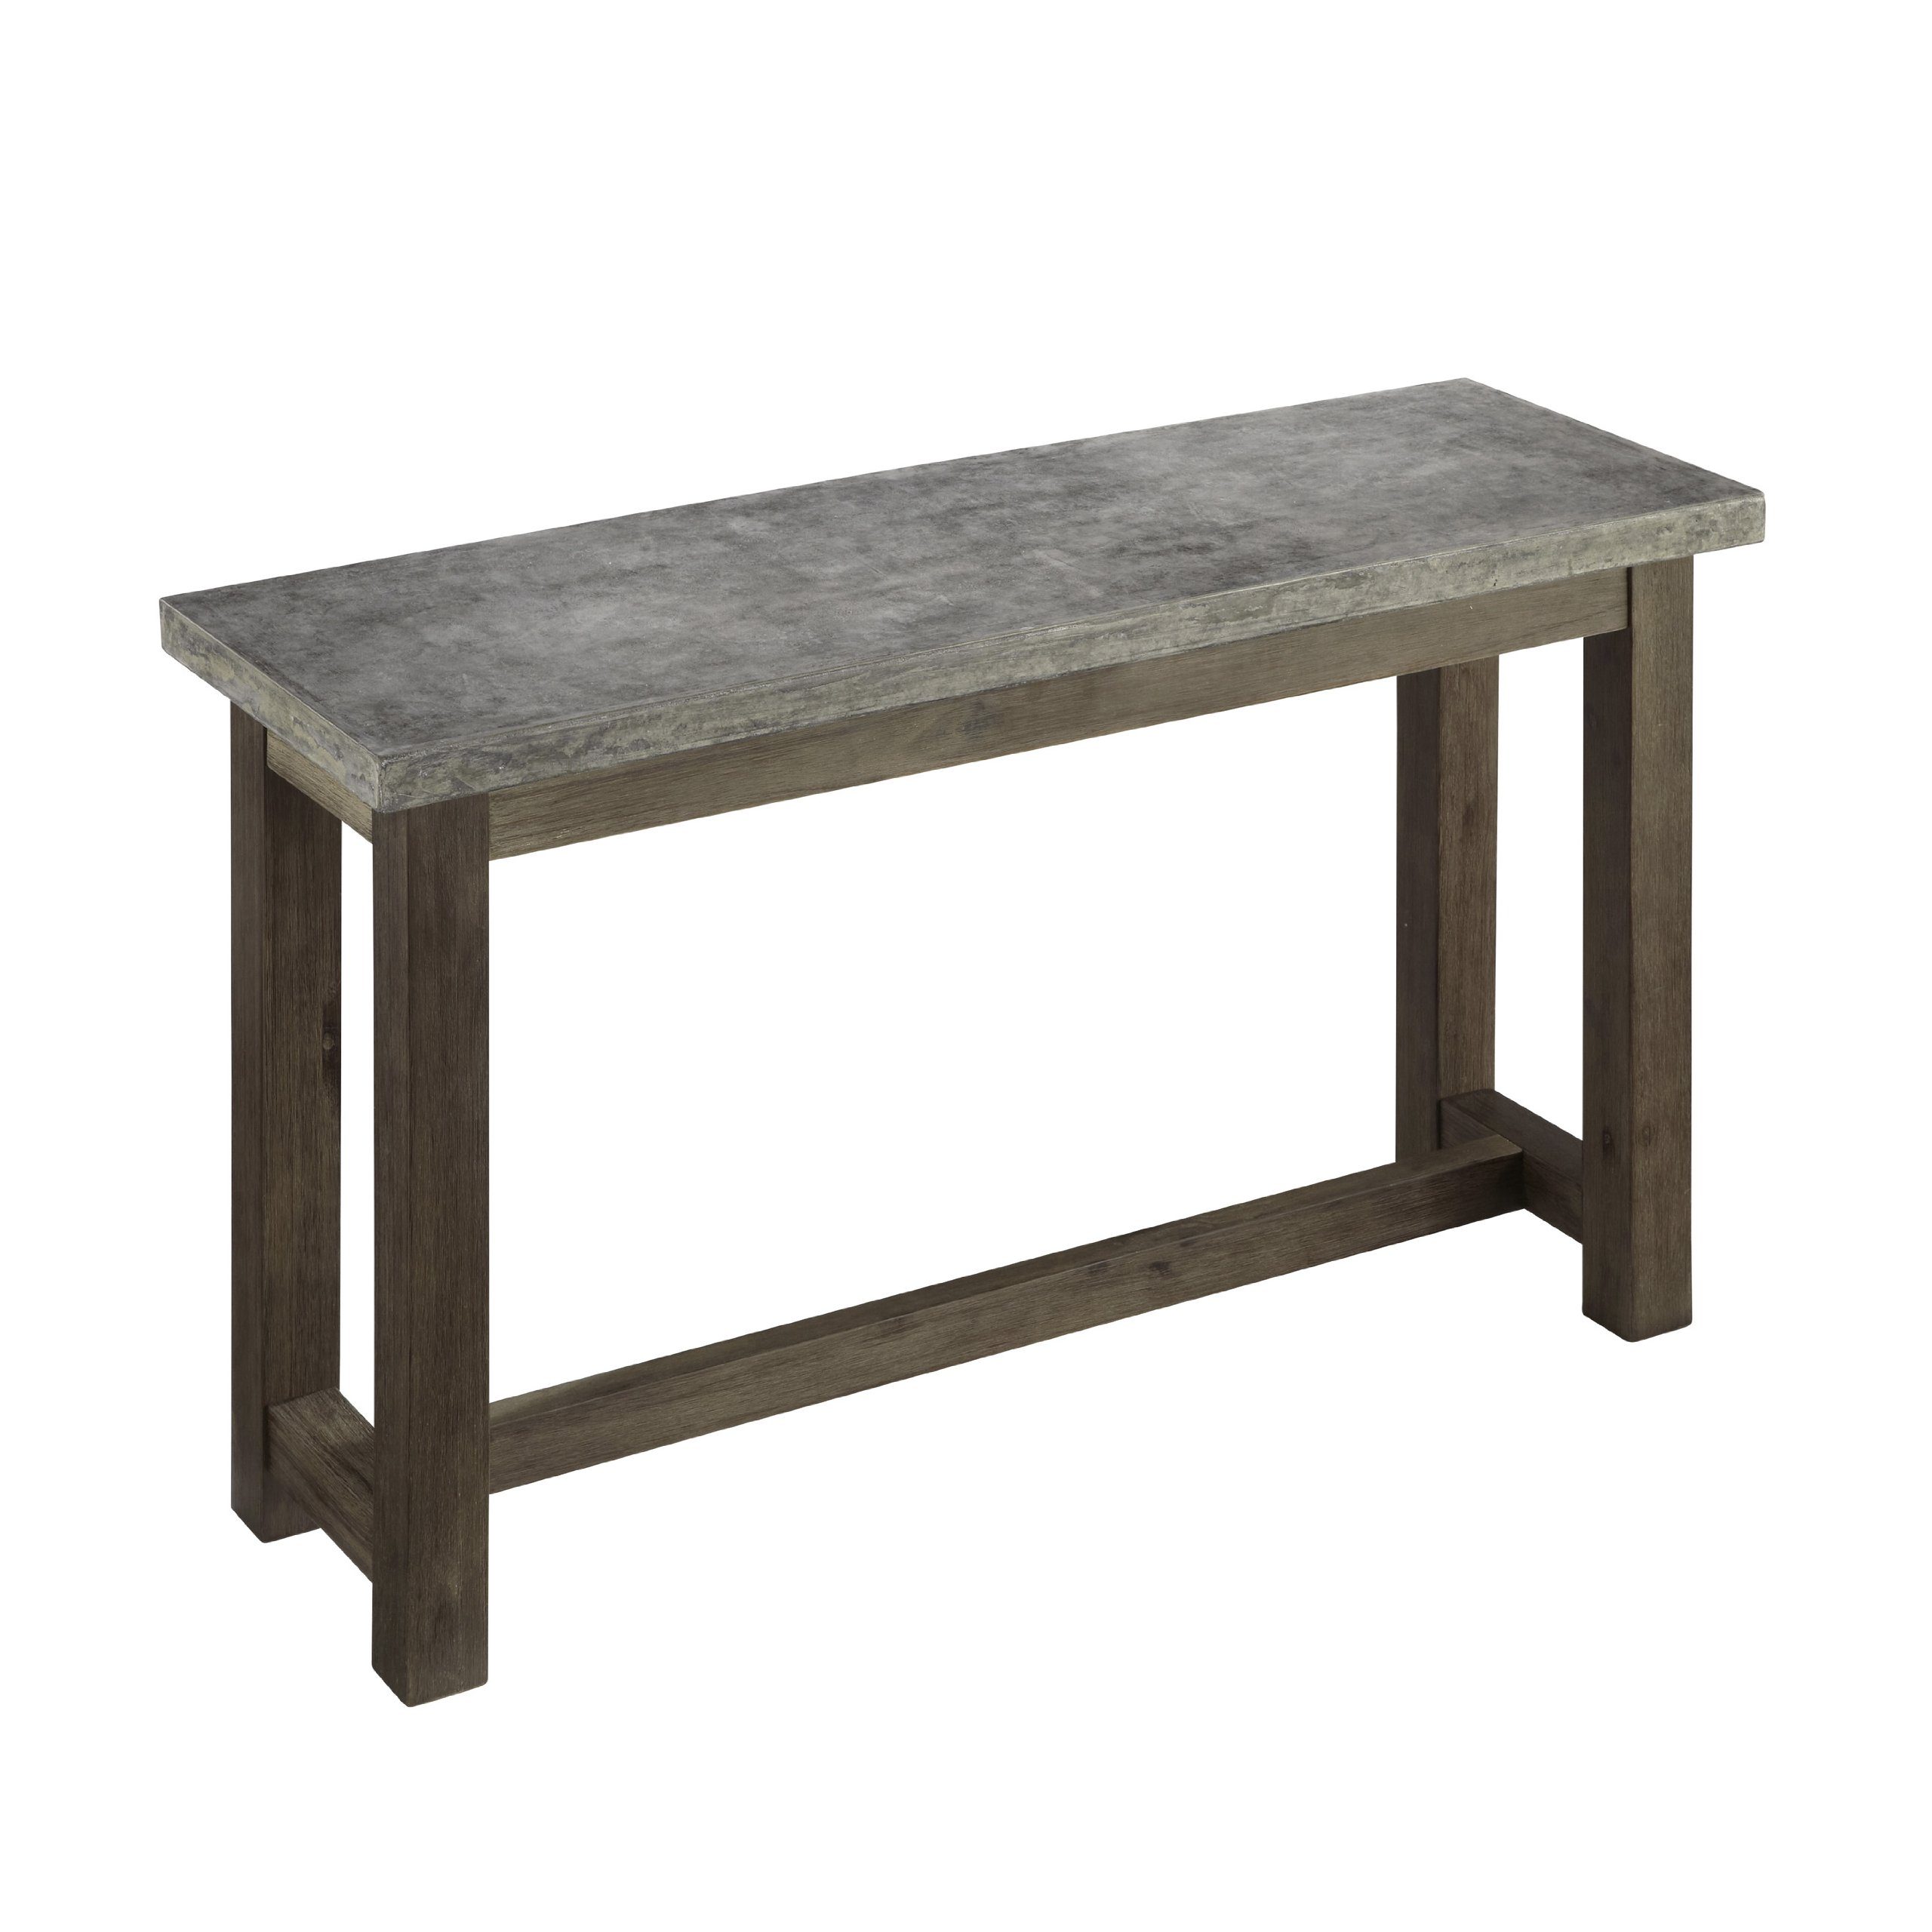 Concrete Chic Brown/Gray Console Table by Home Styles by Home Styles